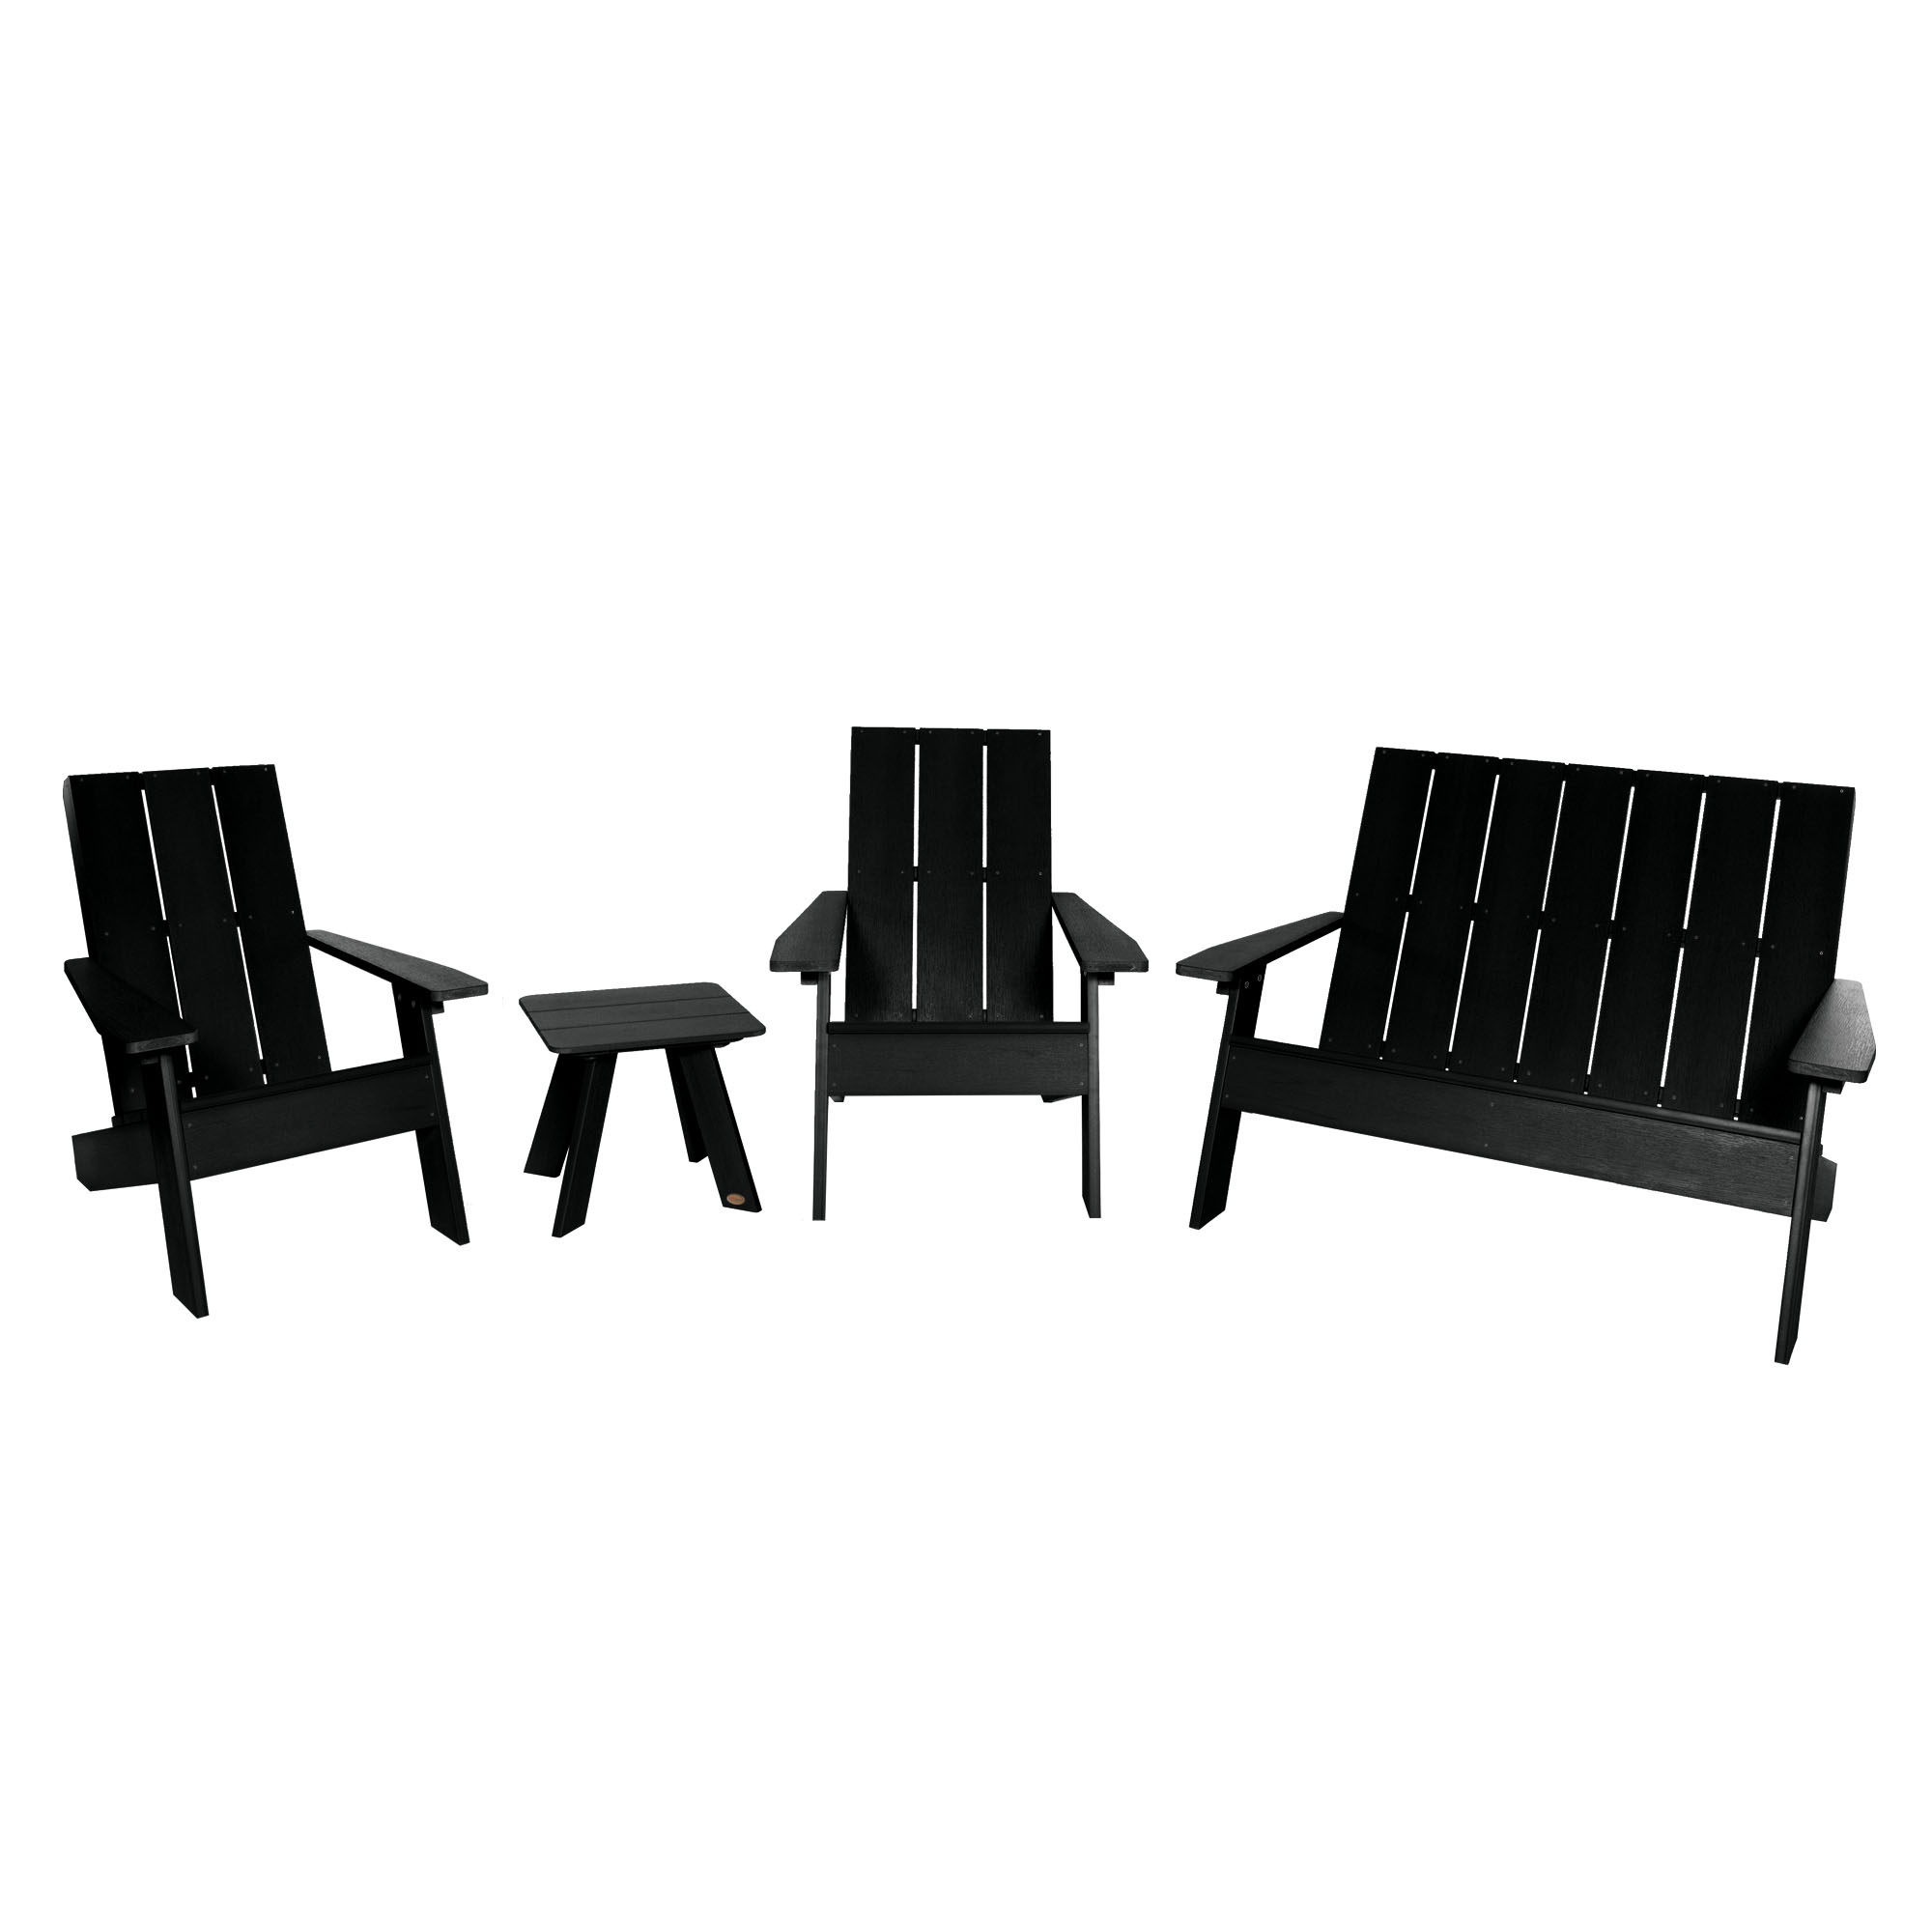 Picture of: 2 Barcelona Modern Adirondack Chair 1 Barcelona Double Wide Modern Adirondack Chair And 1 Barcelona Modern Side Table Walmart Com Walmart Com